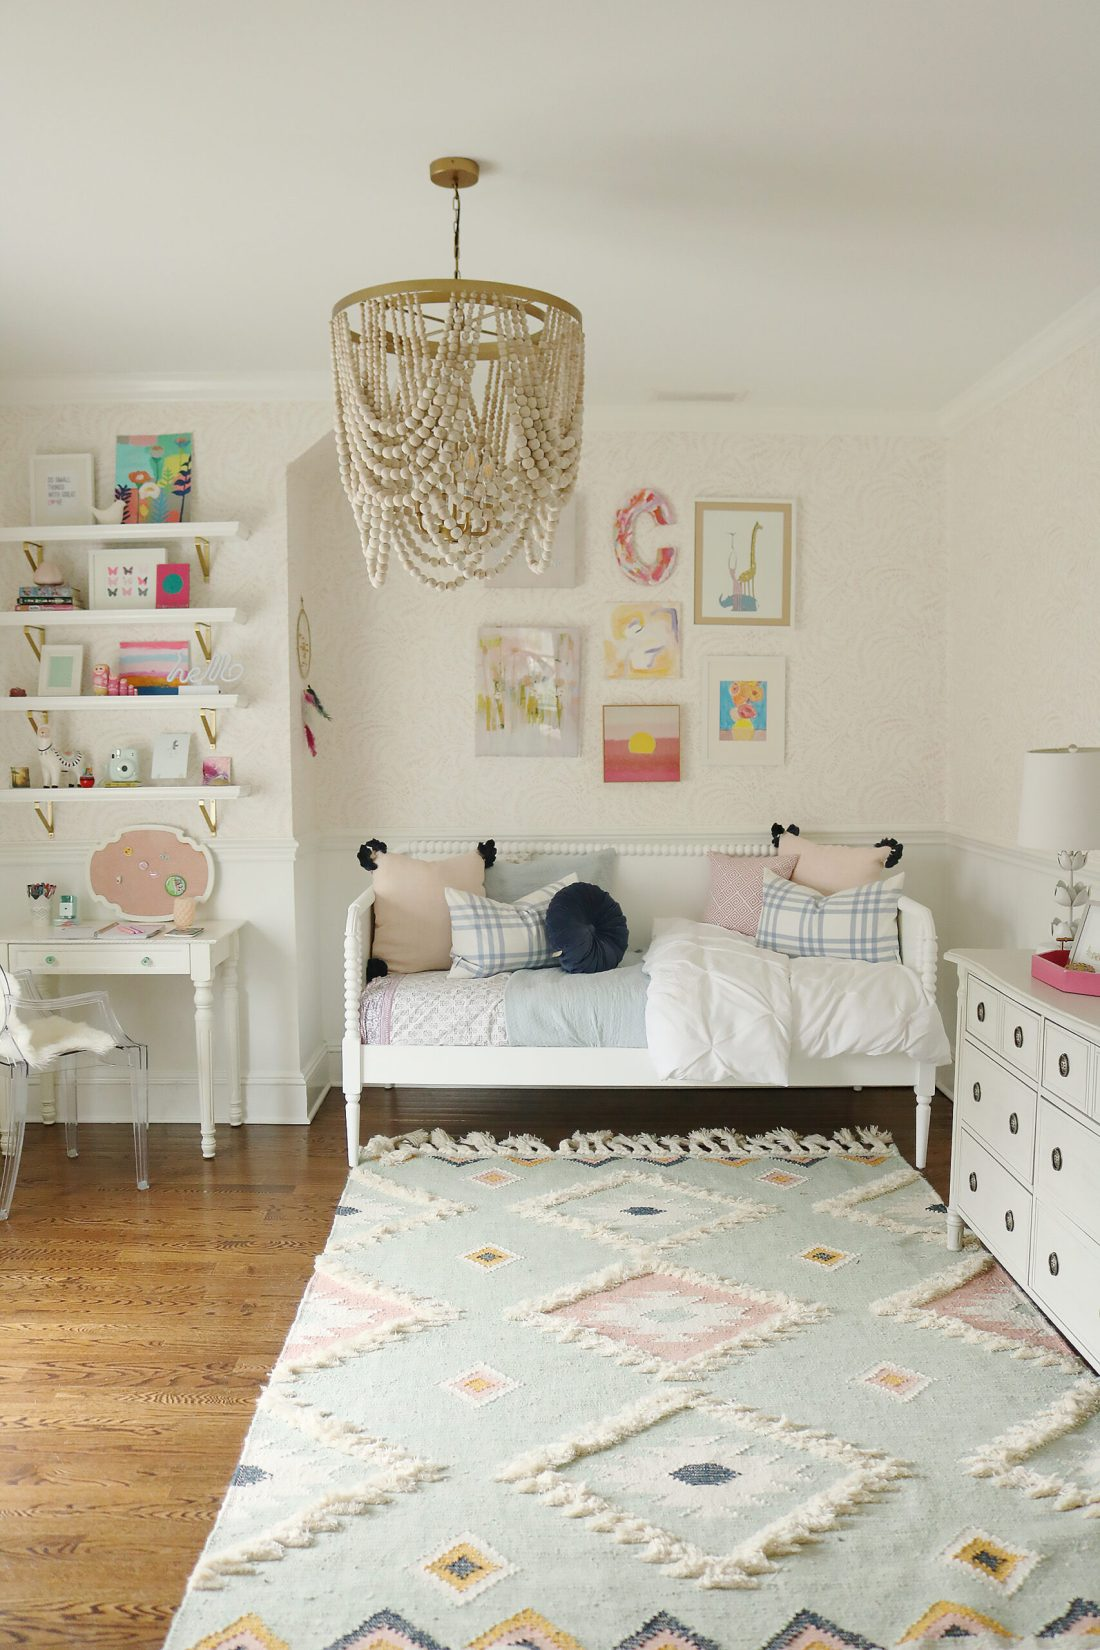 Light Blue Pink Girls Bedroom that mixes textures and art pieces.  It's playful and charming girl's bedroom.  Before and after bedroom, pastel colors girl bedroom, tween girl bedroom, Serena and lily priano wallpaper, reading corner, anthropologie chair || Darling Darleen Top CT Lifestyle Blogger #girlsbedroom